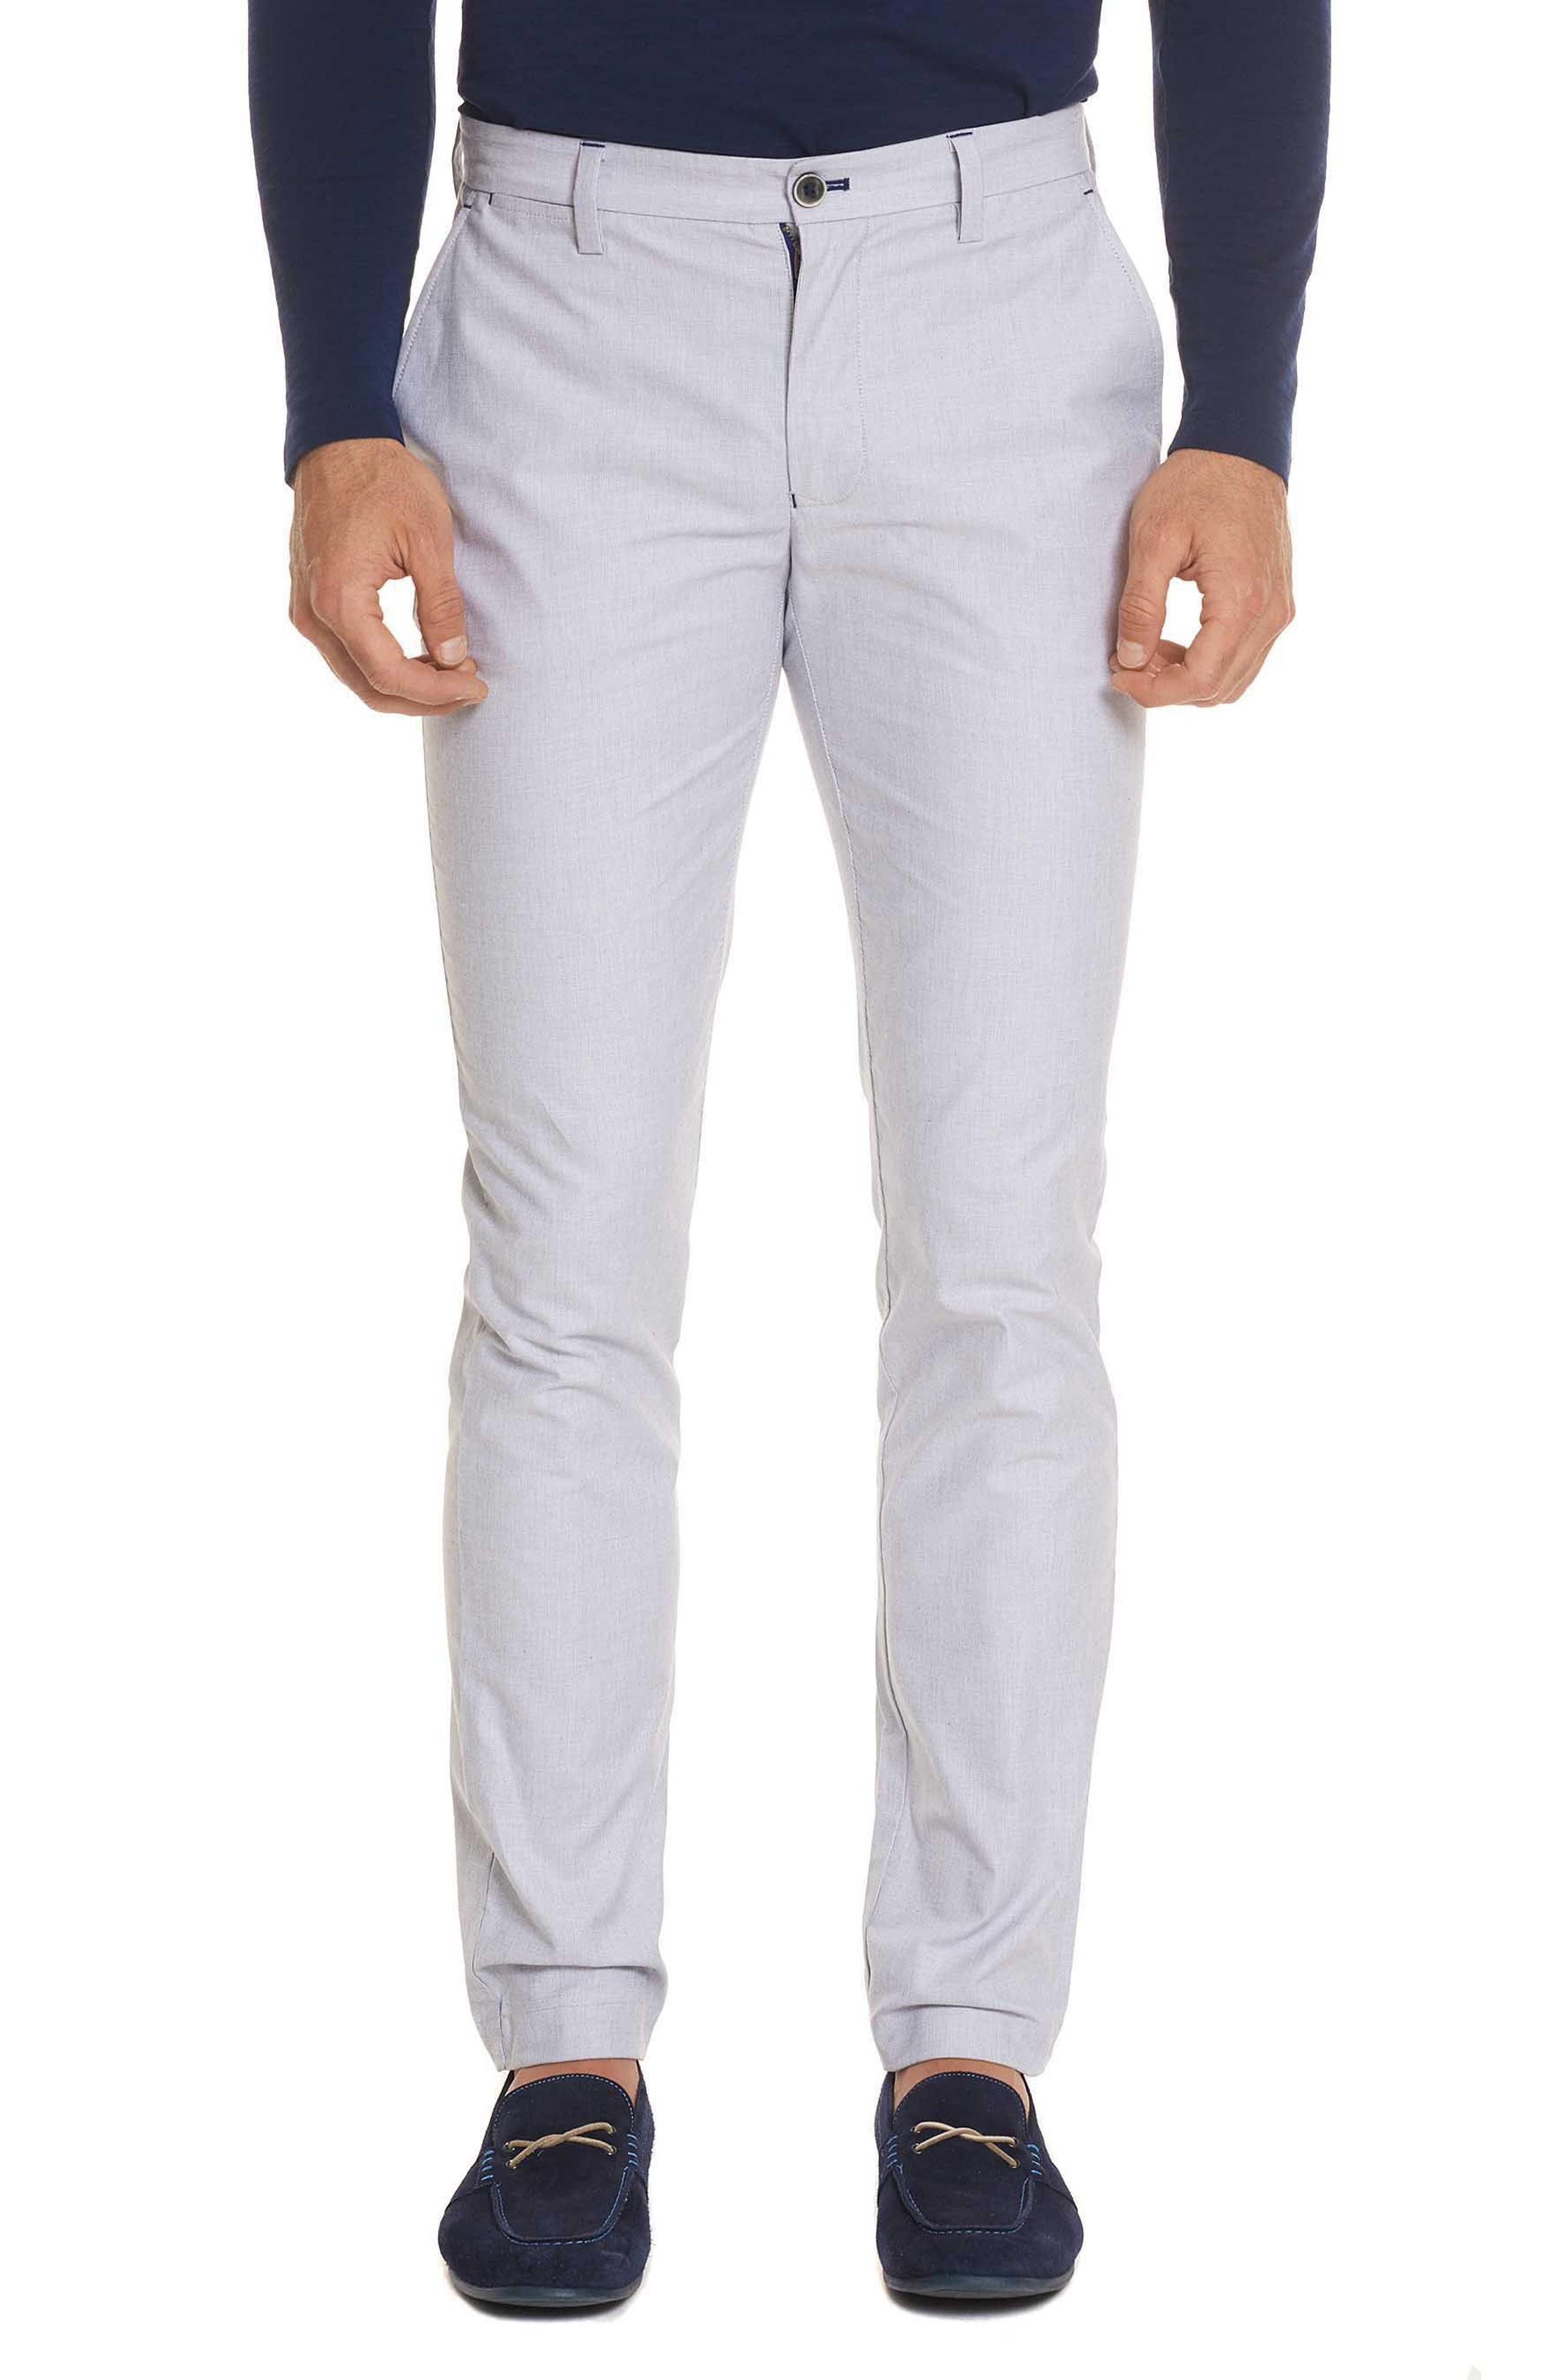 Gerardo Tailored Fit Pants,                         Main,                         color, White